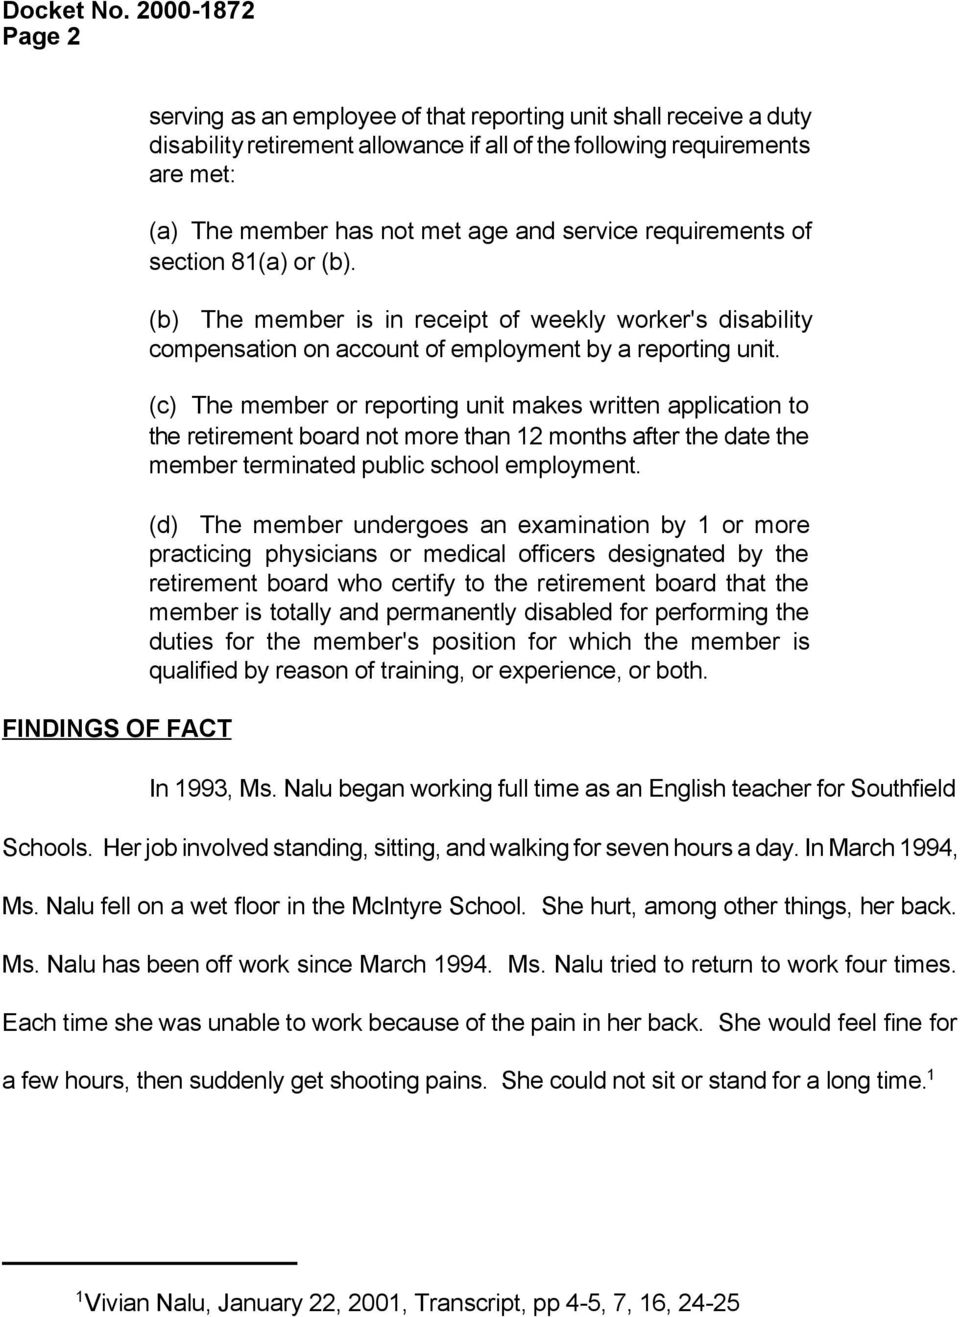 (c) The member or reporting unit makes written application to the retirement board not more than 12 months after the date the member terminated public school employment.